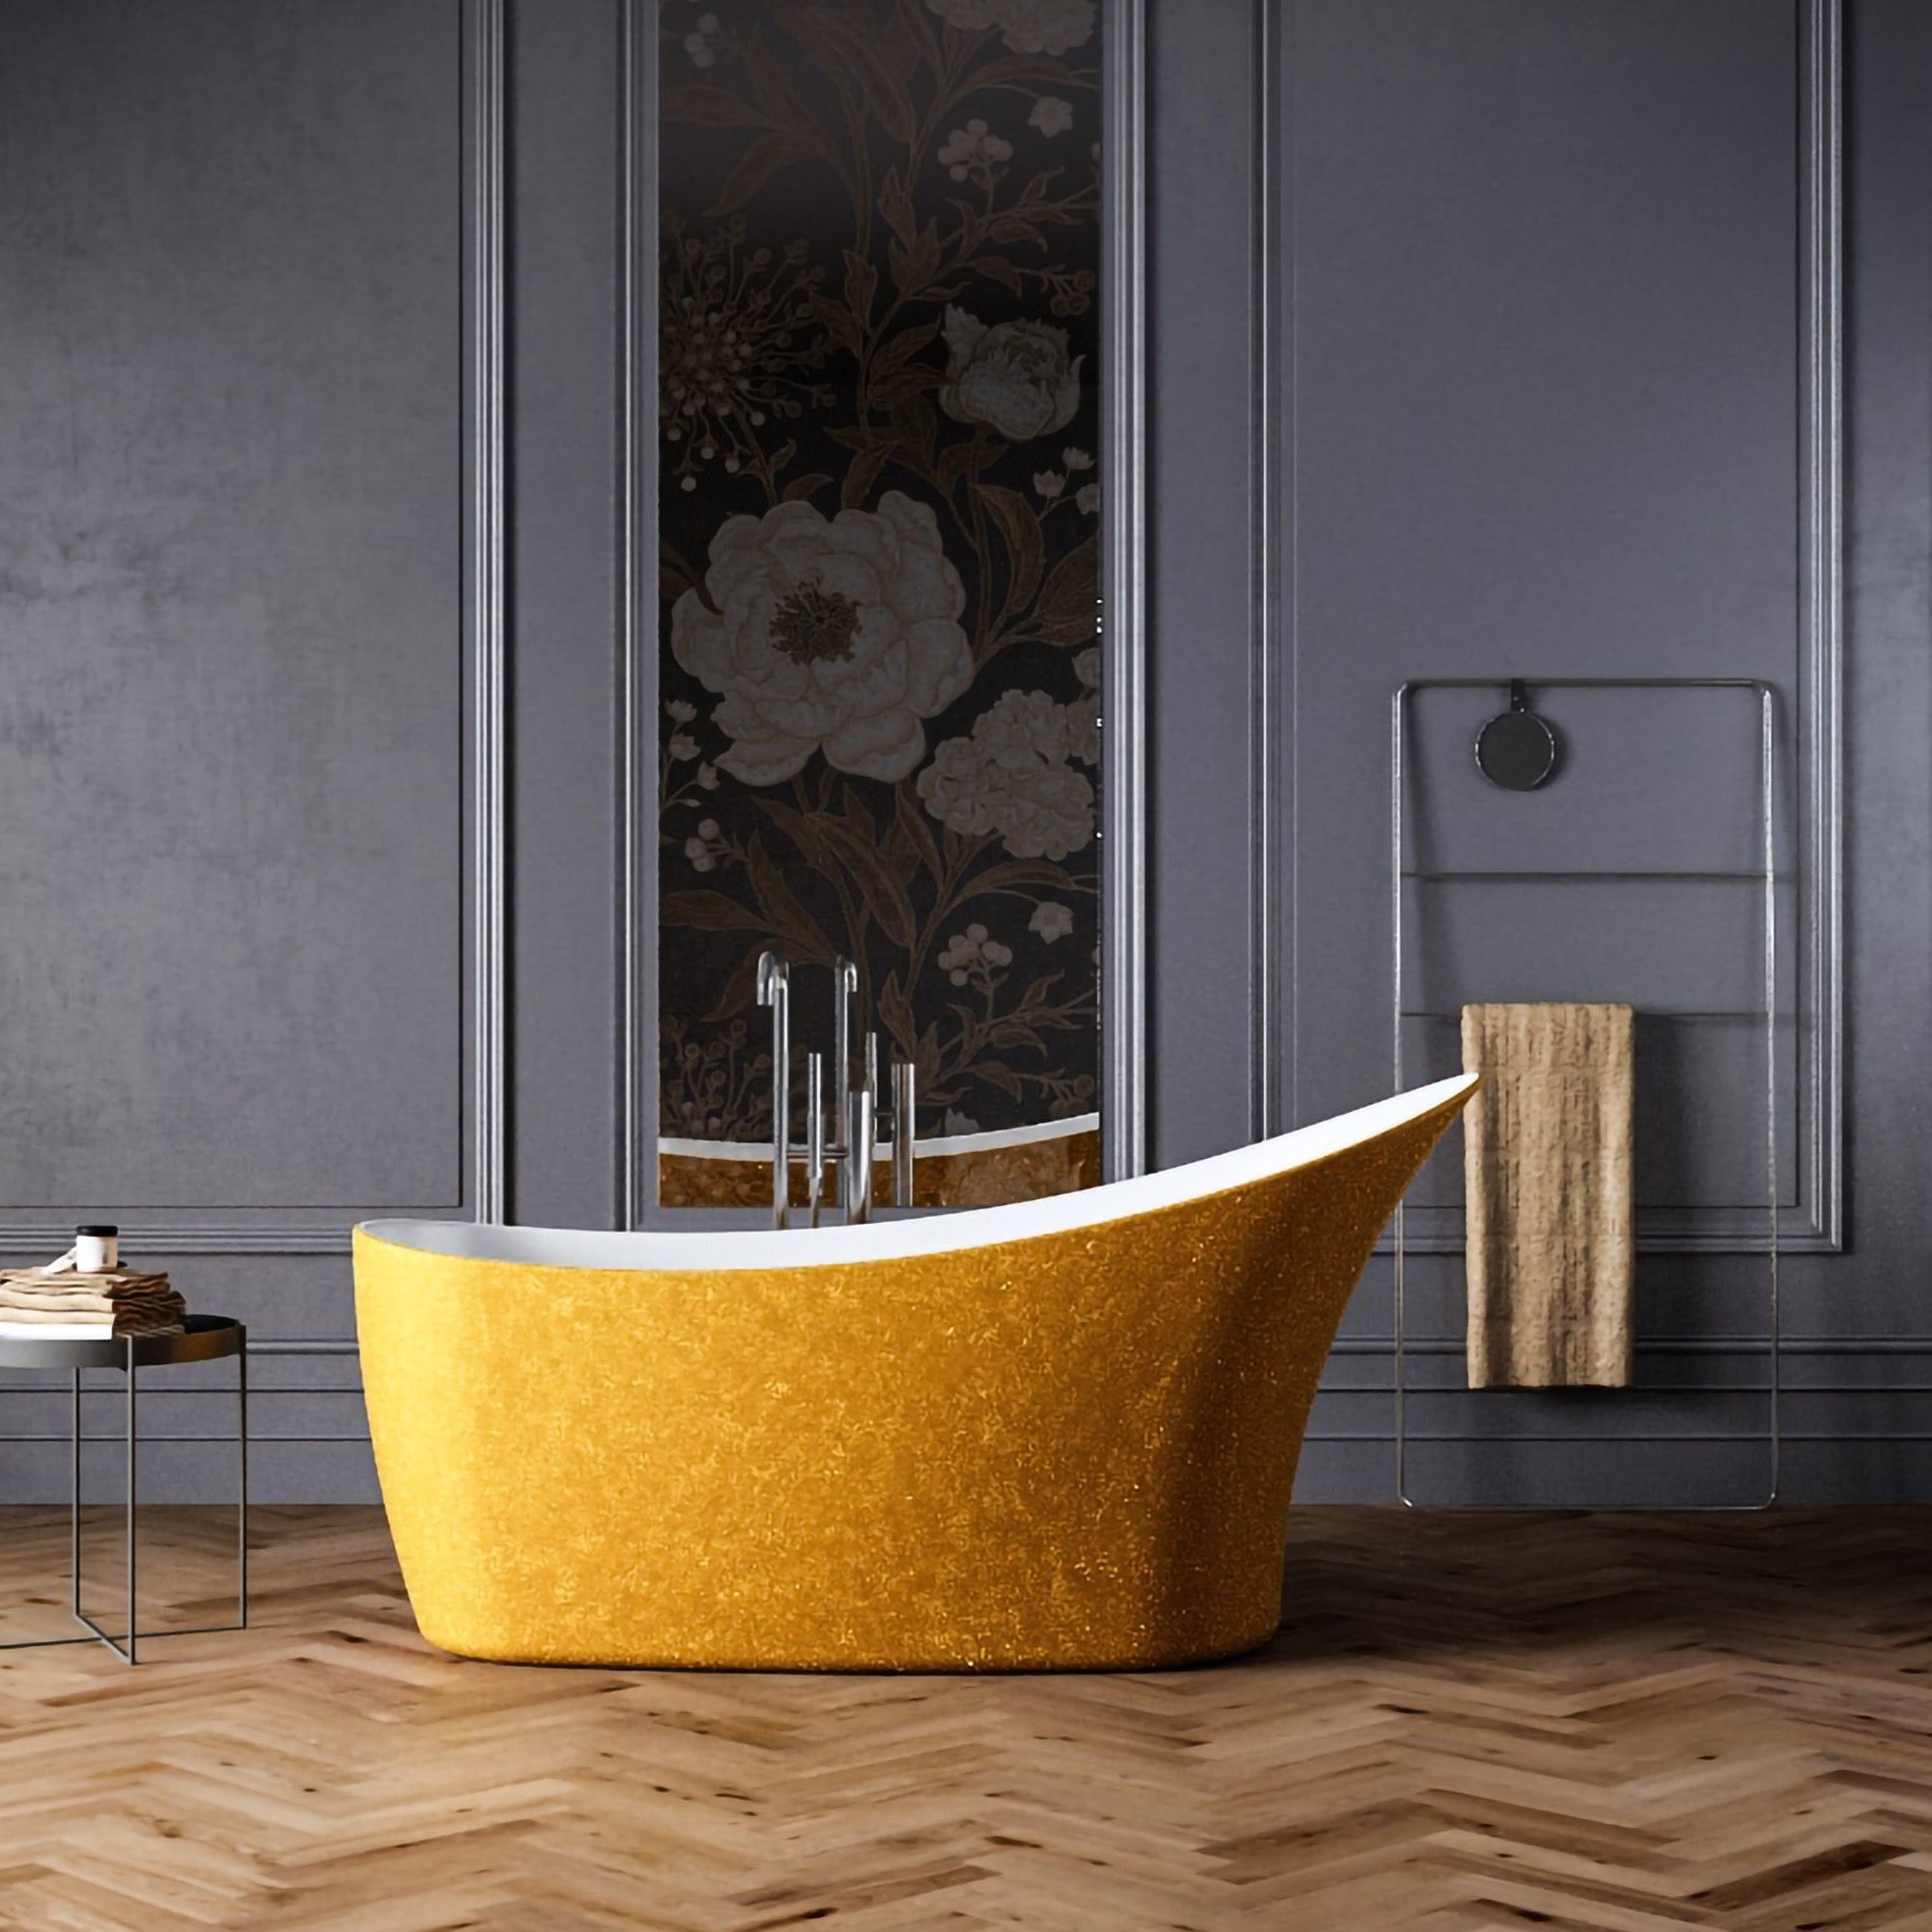 Charlotte Edwards Sparkling Gold 1590mm Portobello Freestanding Bath